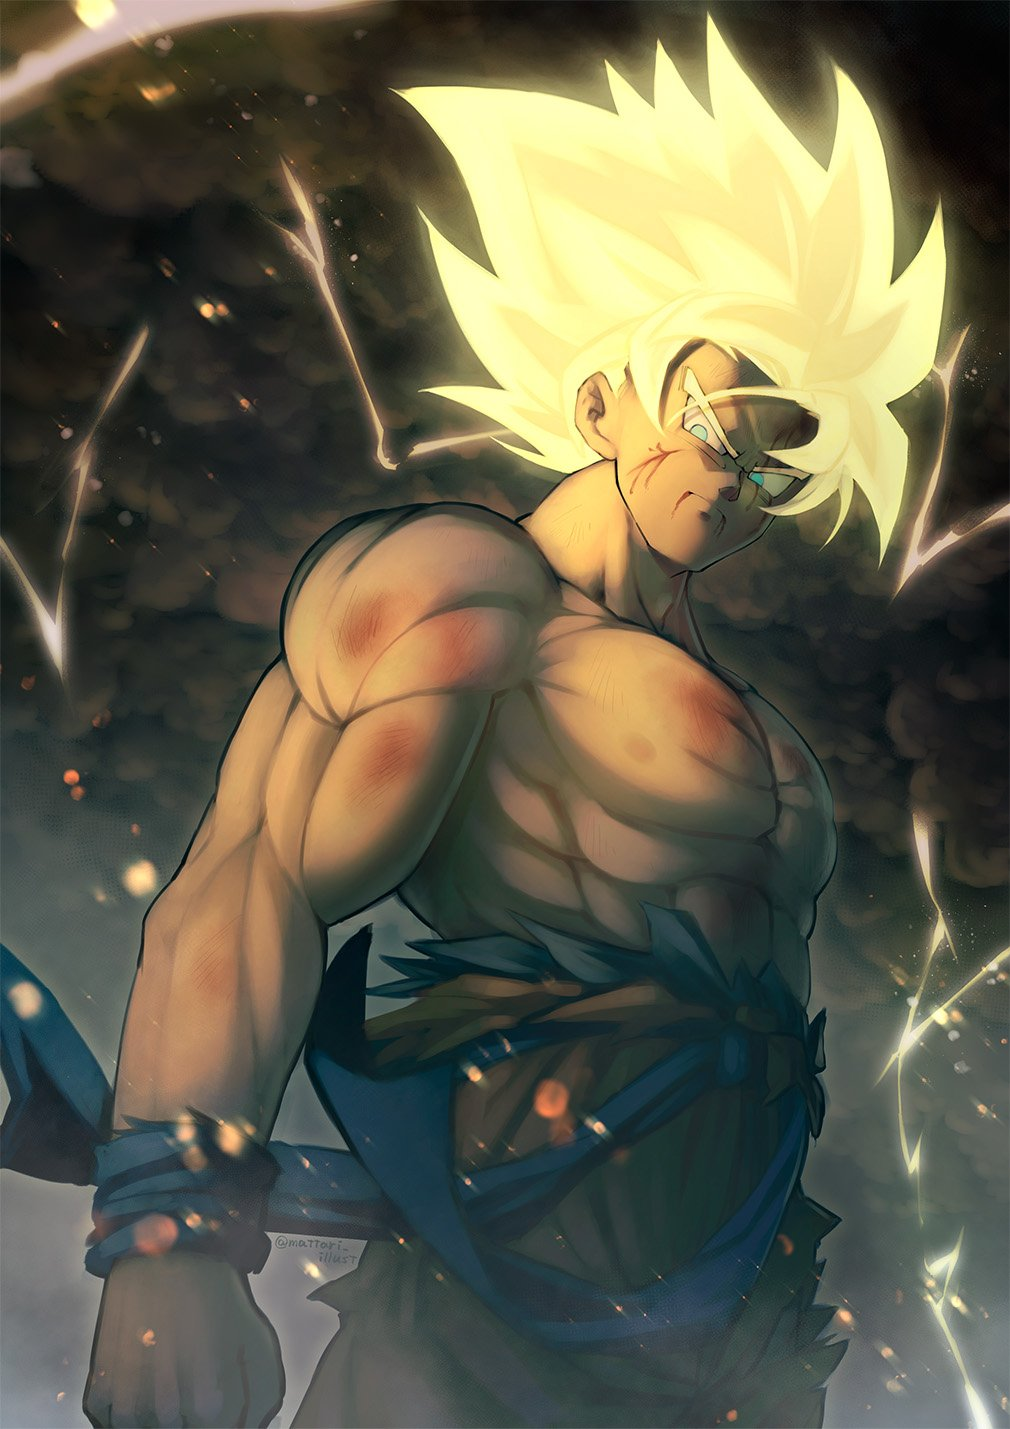 1boy abs aqua_eyes arm_at_side blonde_hair blood blood_from_mouth blood_on_face blurry blurry_foreground bokeh bruise chest clenched_hand clothes_lift clouds cloudy_sky dark_clouds dark_sky depth_of_field dougi dragon_ball dragon_ball_z electricity frown glowing glowing_hair highres injury lightning lightning_bolt looking_away male_focus mattari_illust muscle outdoors serious shaded_face shirt shirtless sky son_gokuu standing super_saiyan torn_clothes torn_shirt twitter_username upper_body wind wind_lift